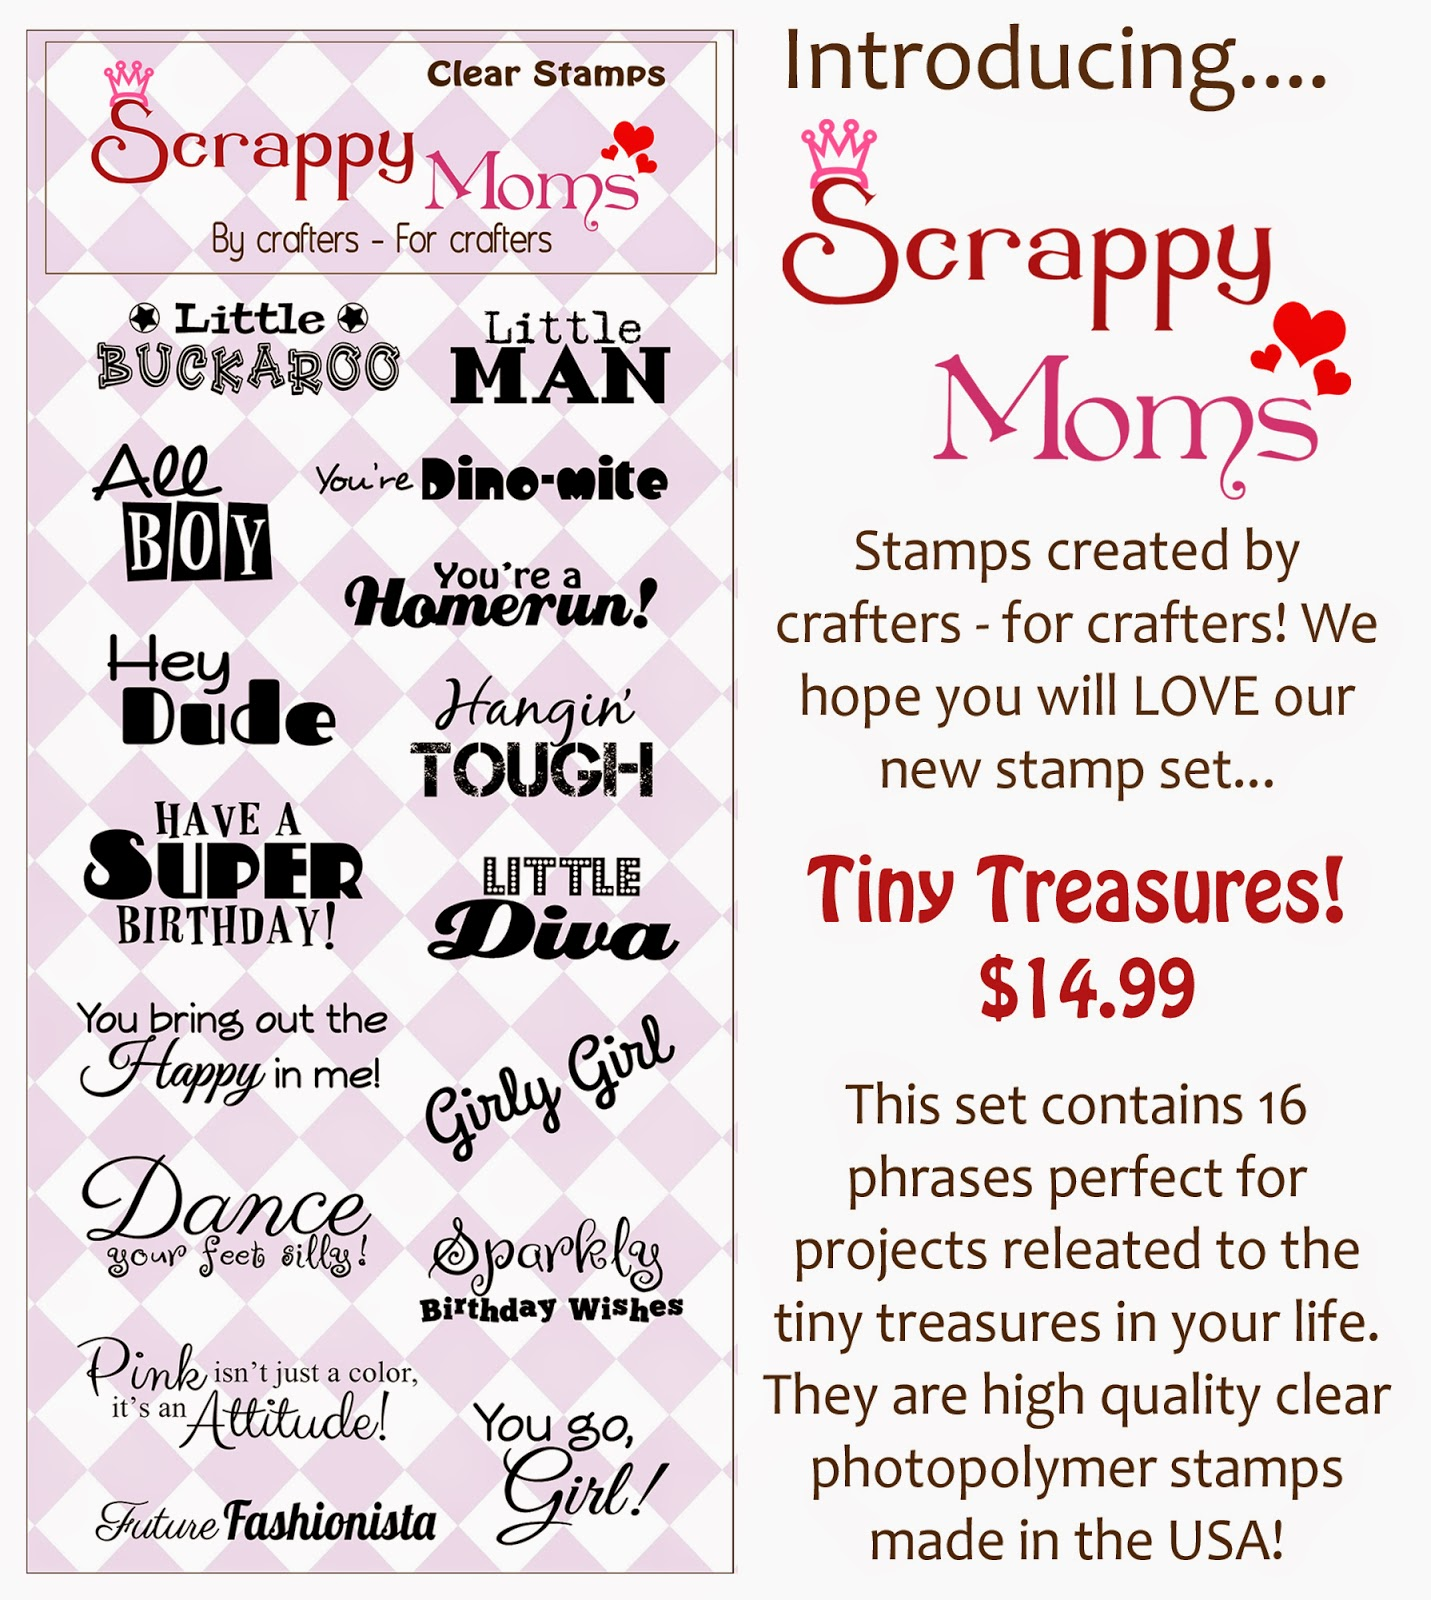 http://scrappymoms-stamps-store.blogspot.com/2010/01/kids-stamp-sets.html